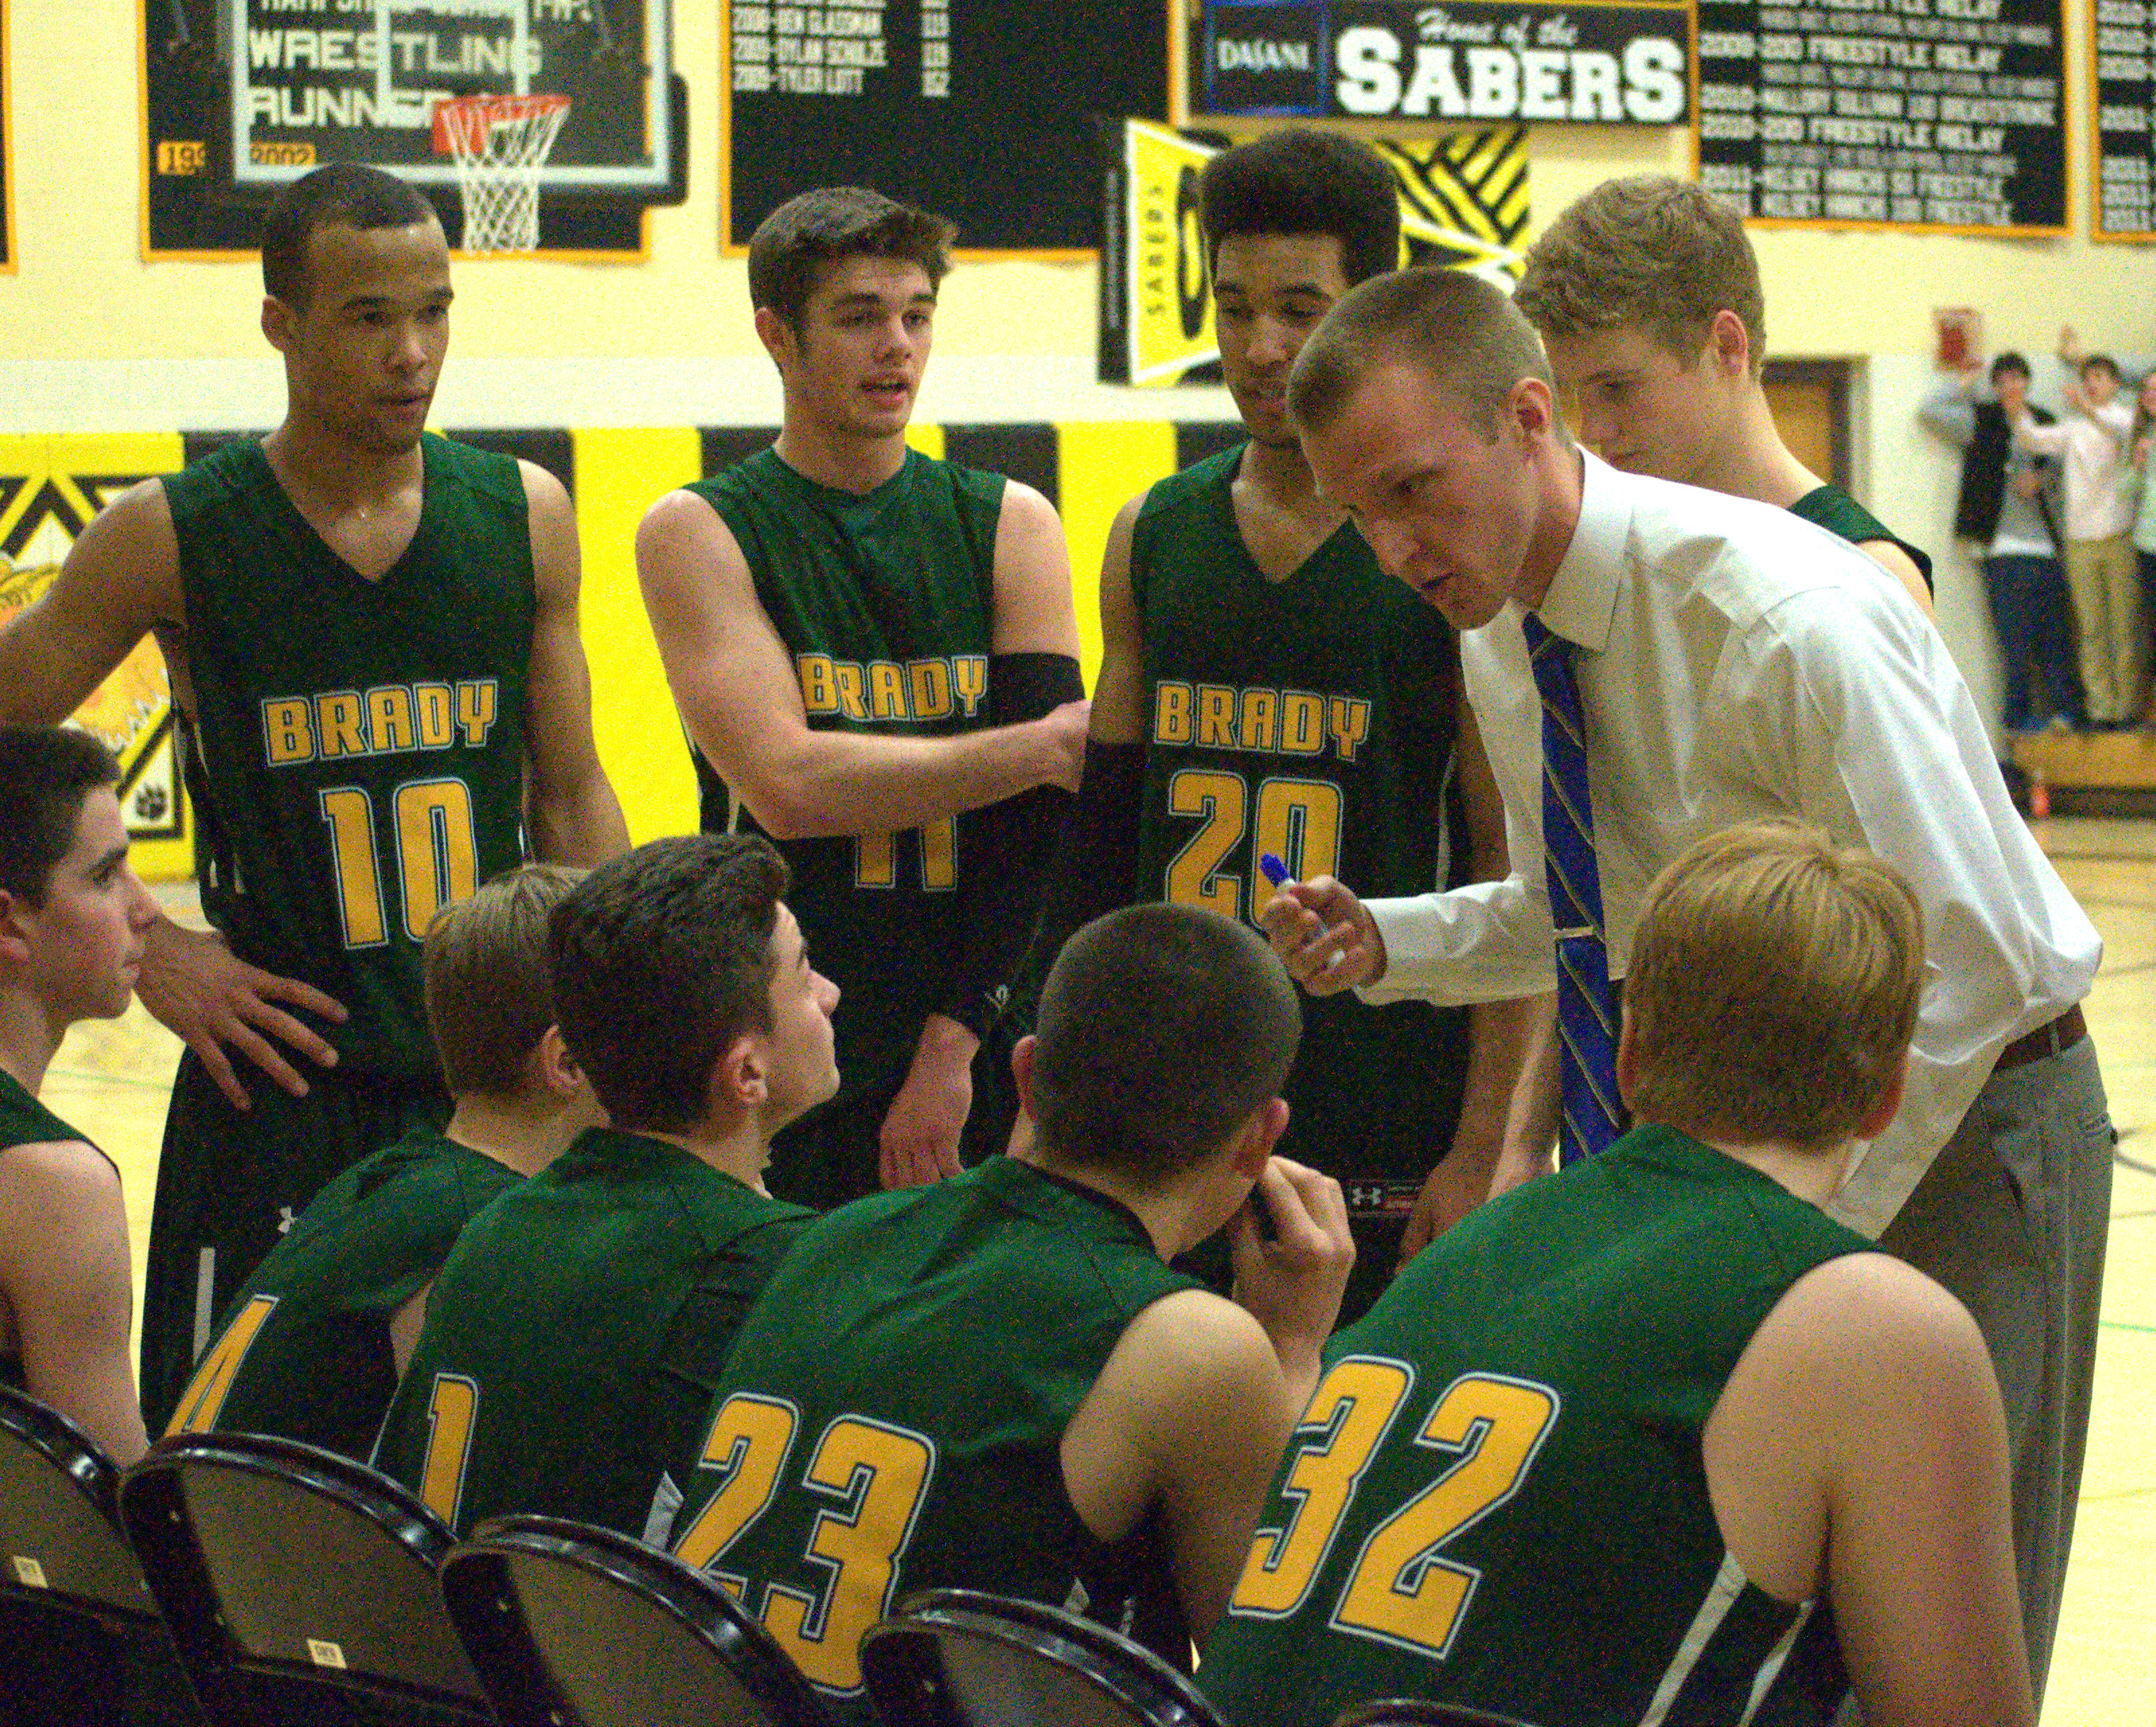 Bishop Brady coach Cole Etten talks to his team during a timeout.